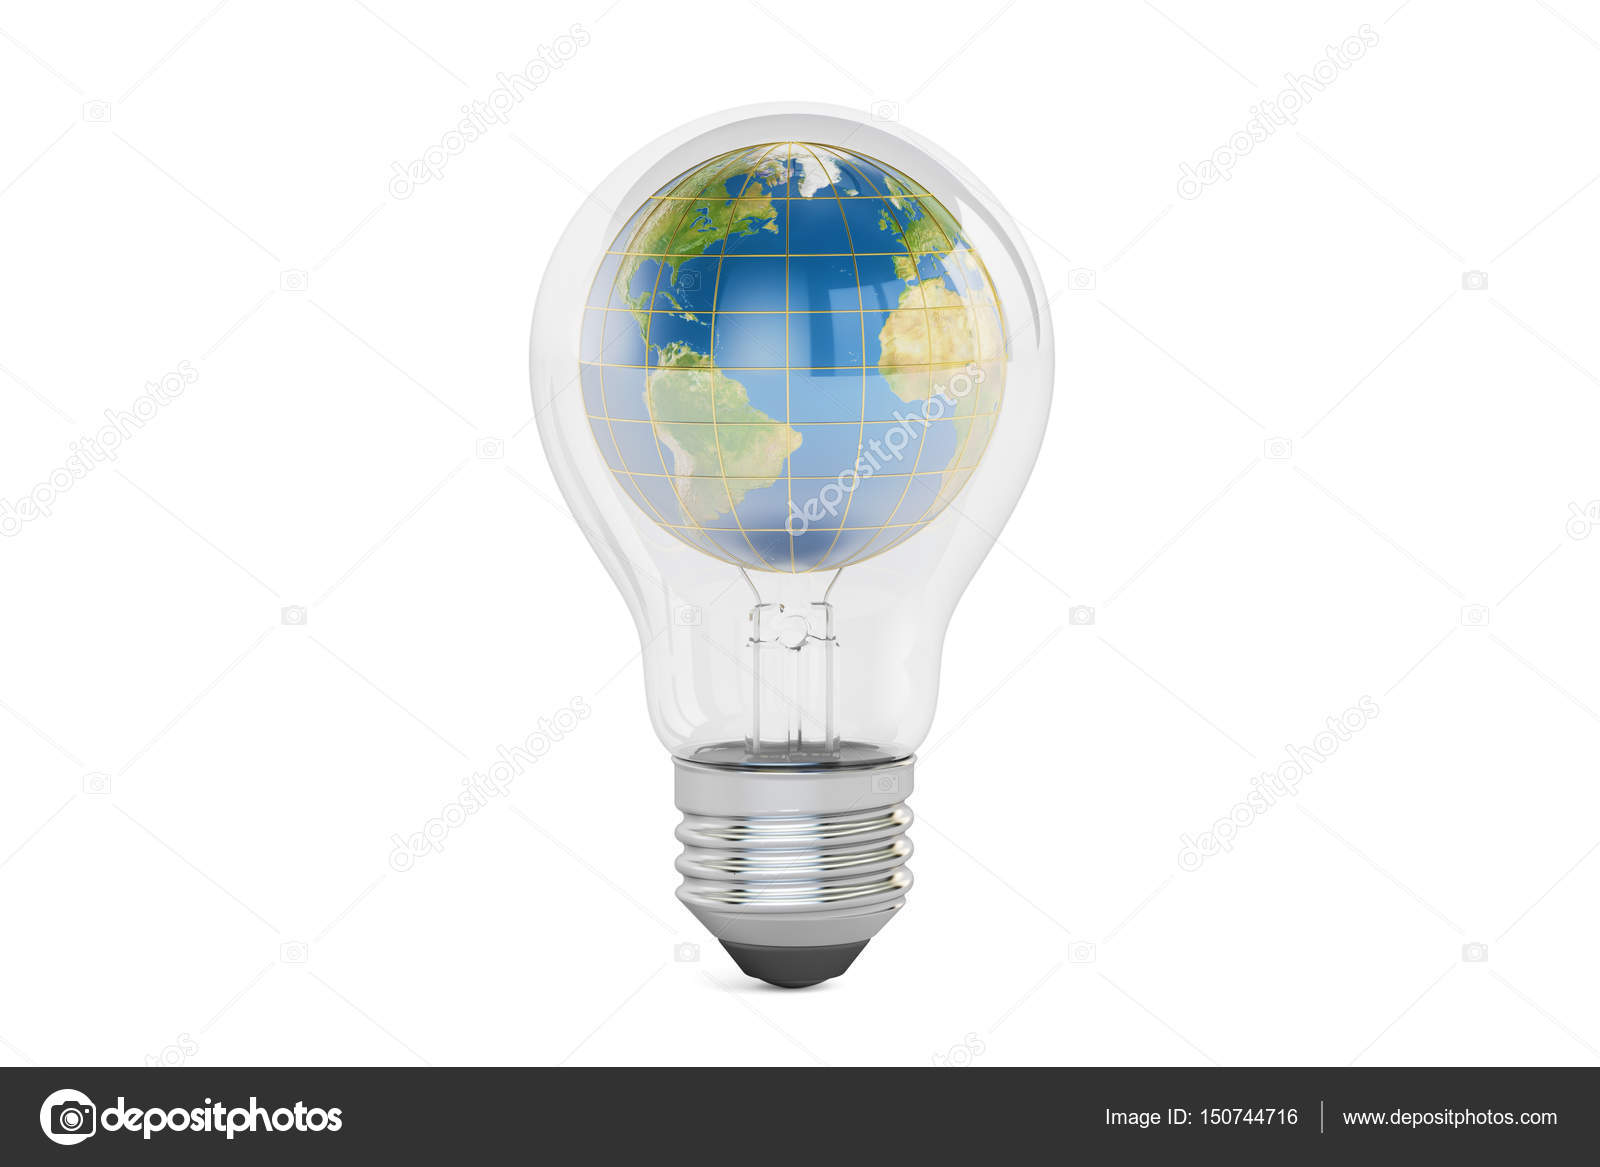 Light Bulb With Earth Globe Inside Save Energy Concept 3d Rend The Diagram Rendering Isolated On White Background Photo By Alexlmx